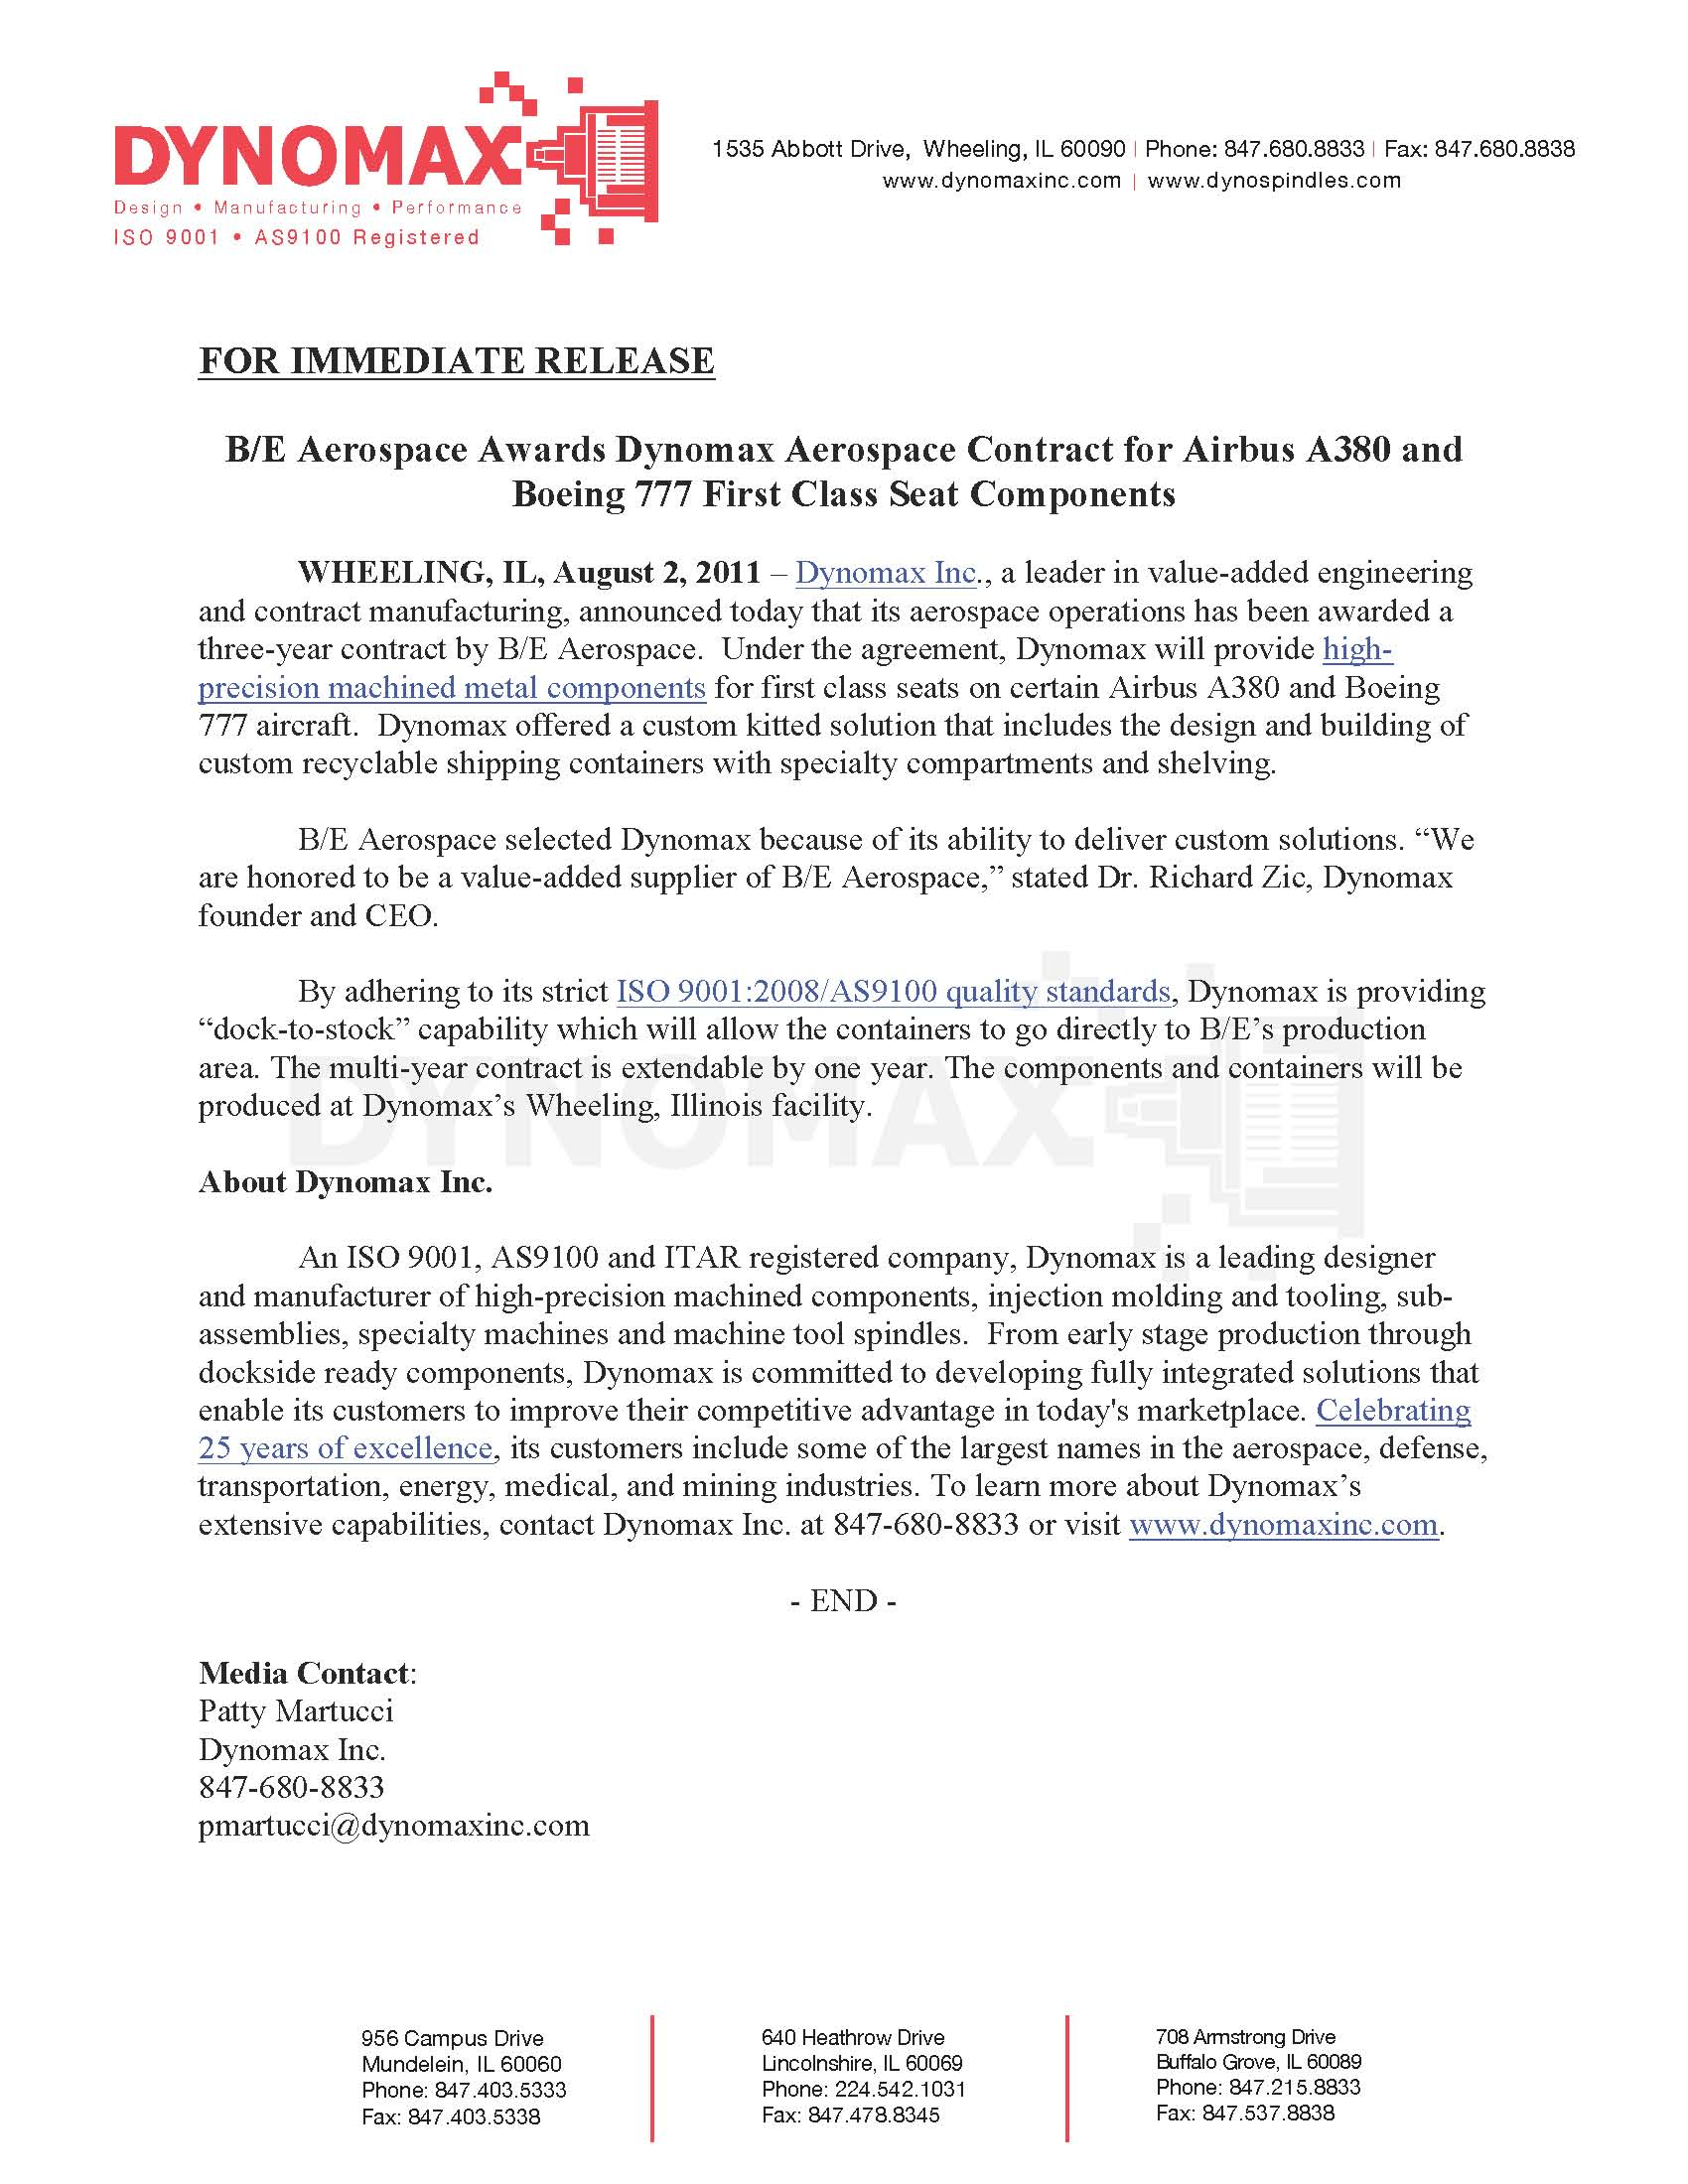 Press Releases | Dynomax, Inc